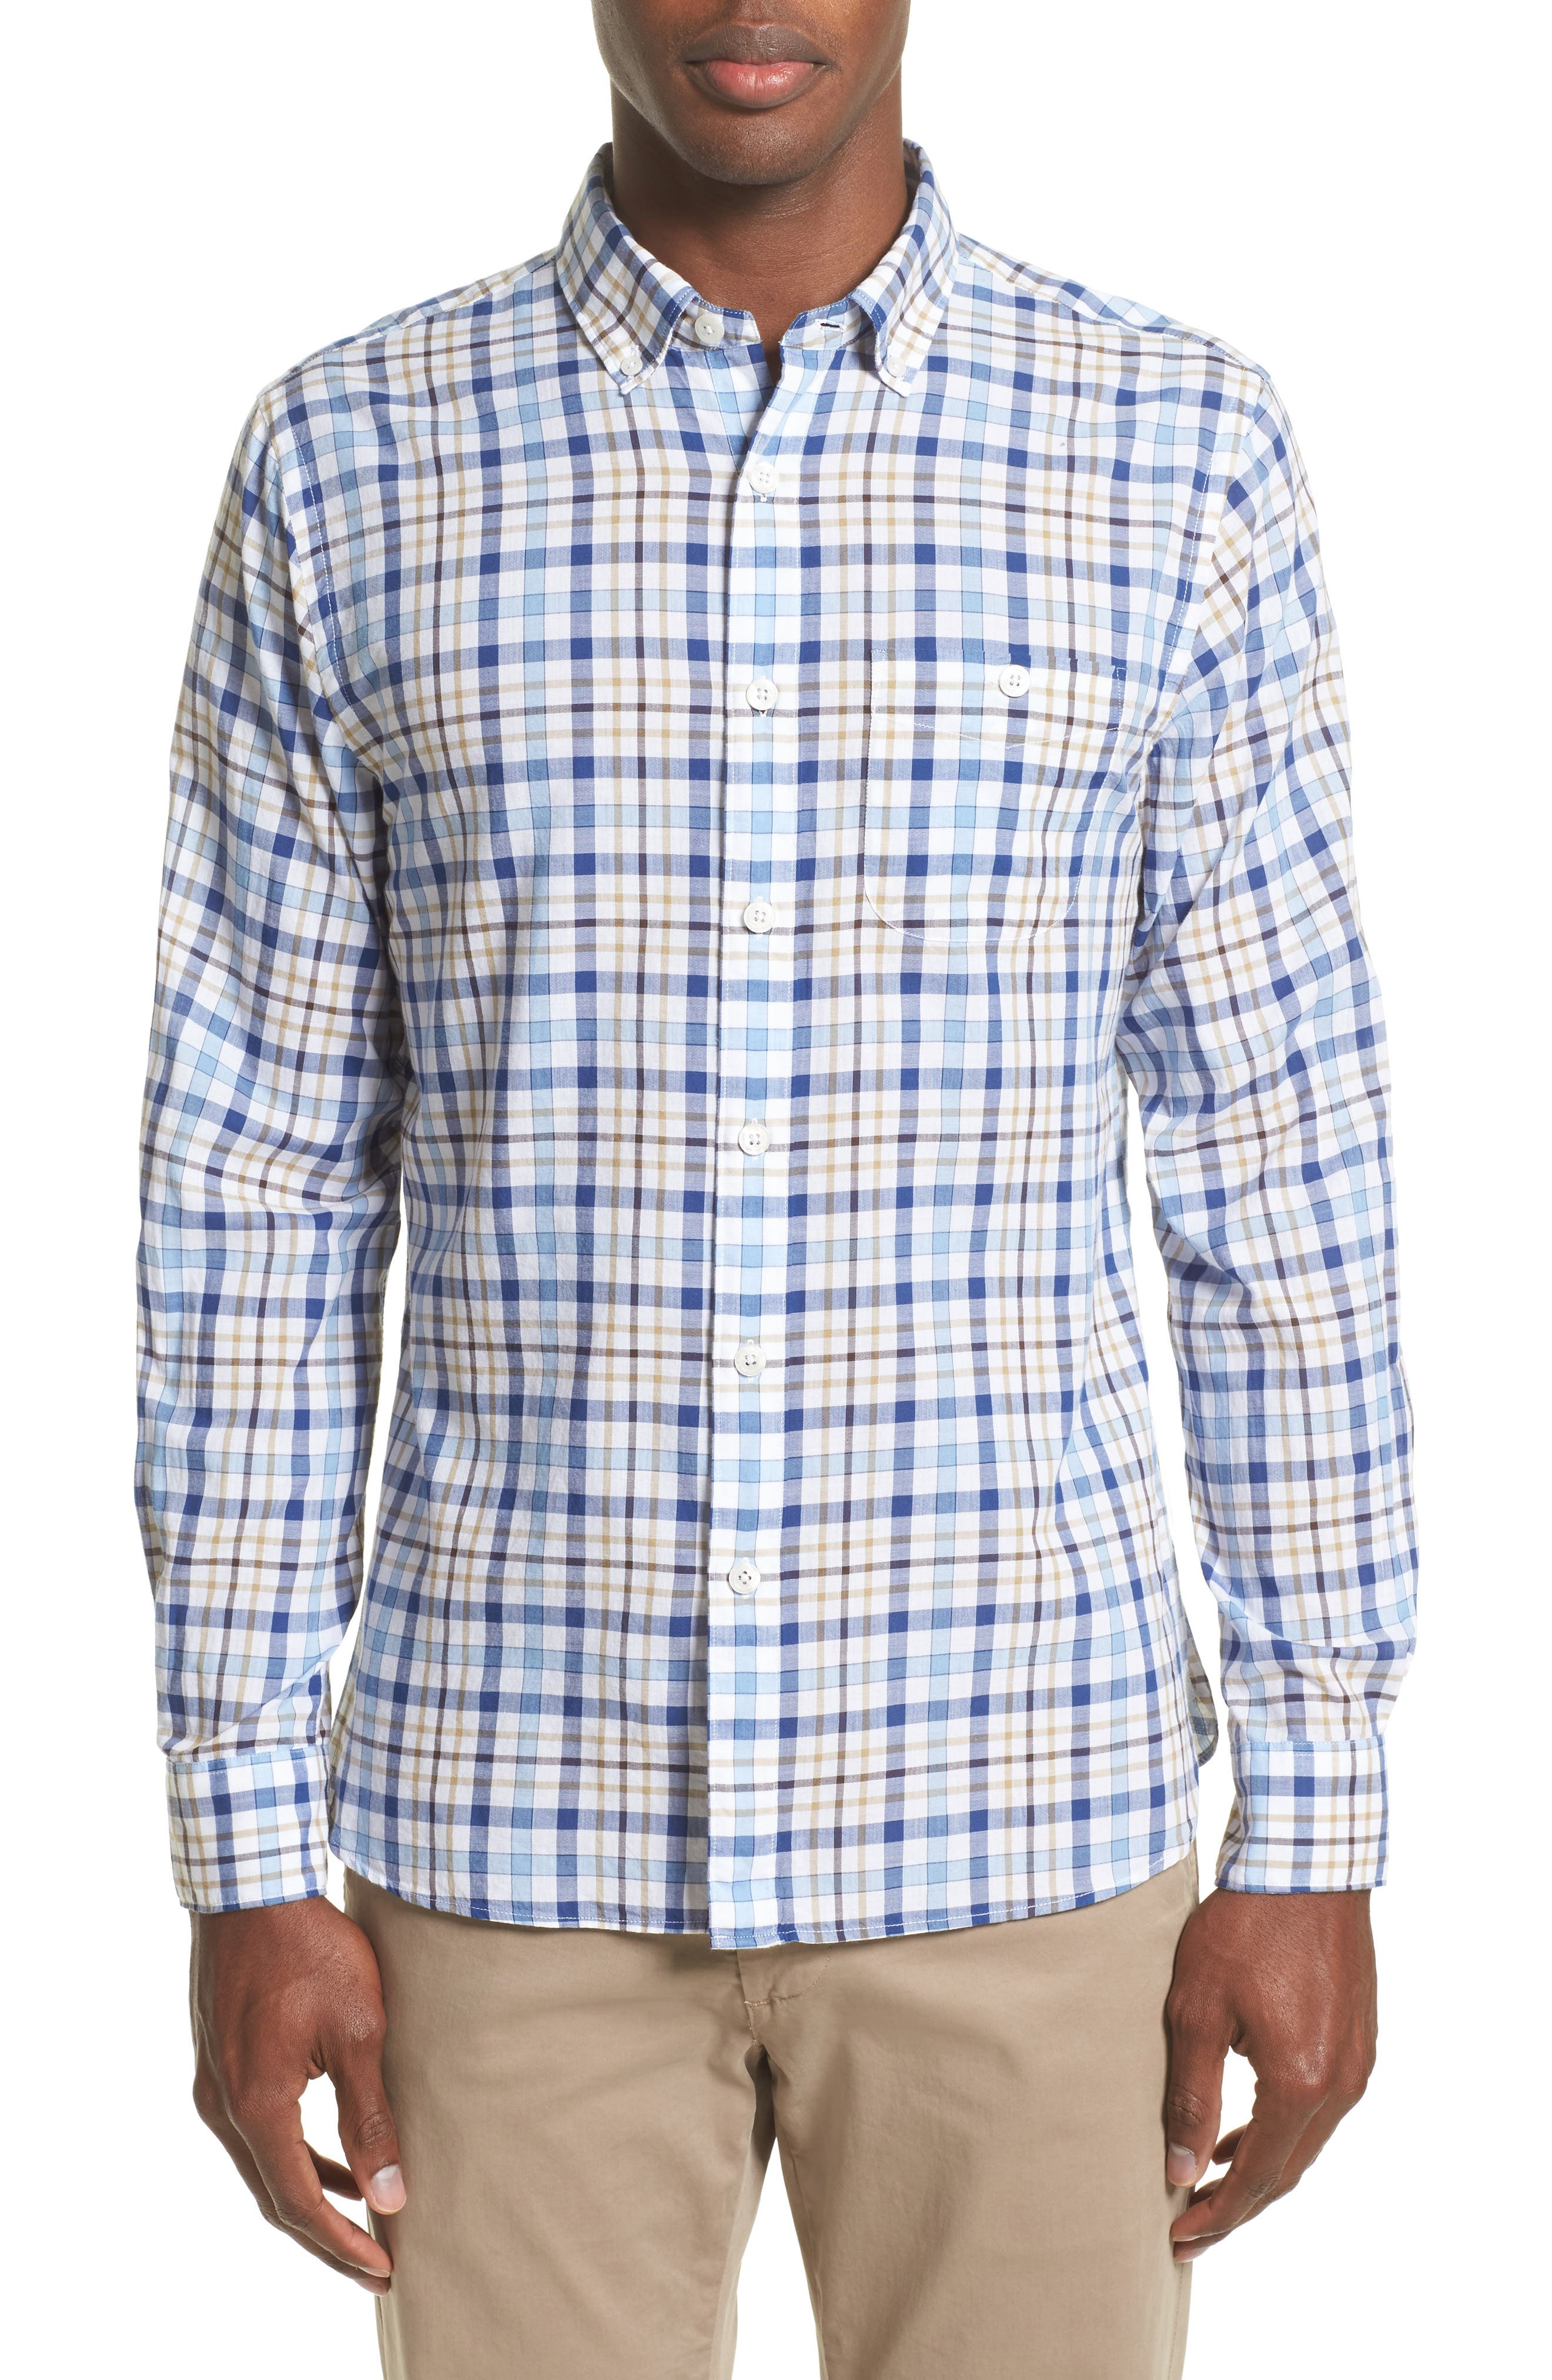 Alternate Image 1 Selected - Todd Snyder Trim Fit Plaid Sport Shirt